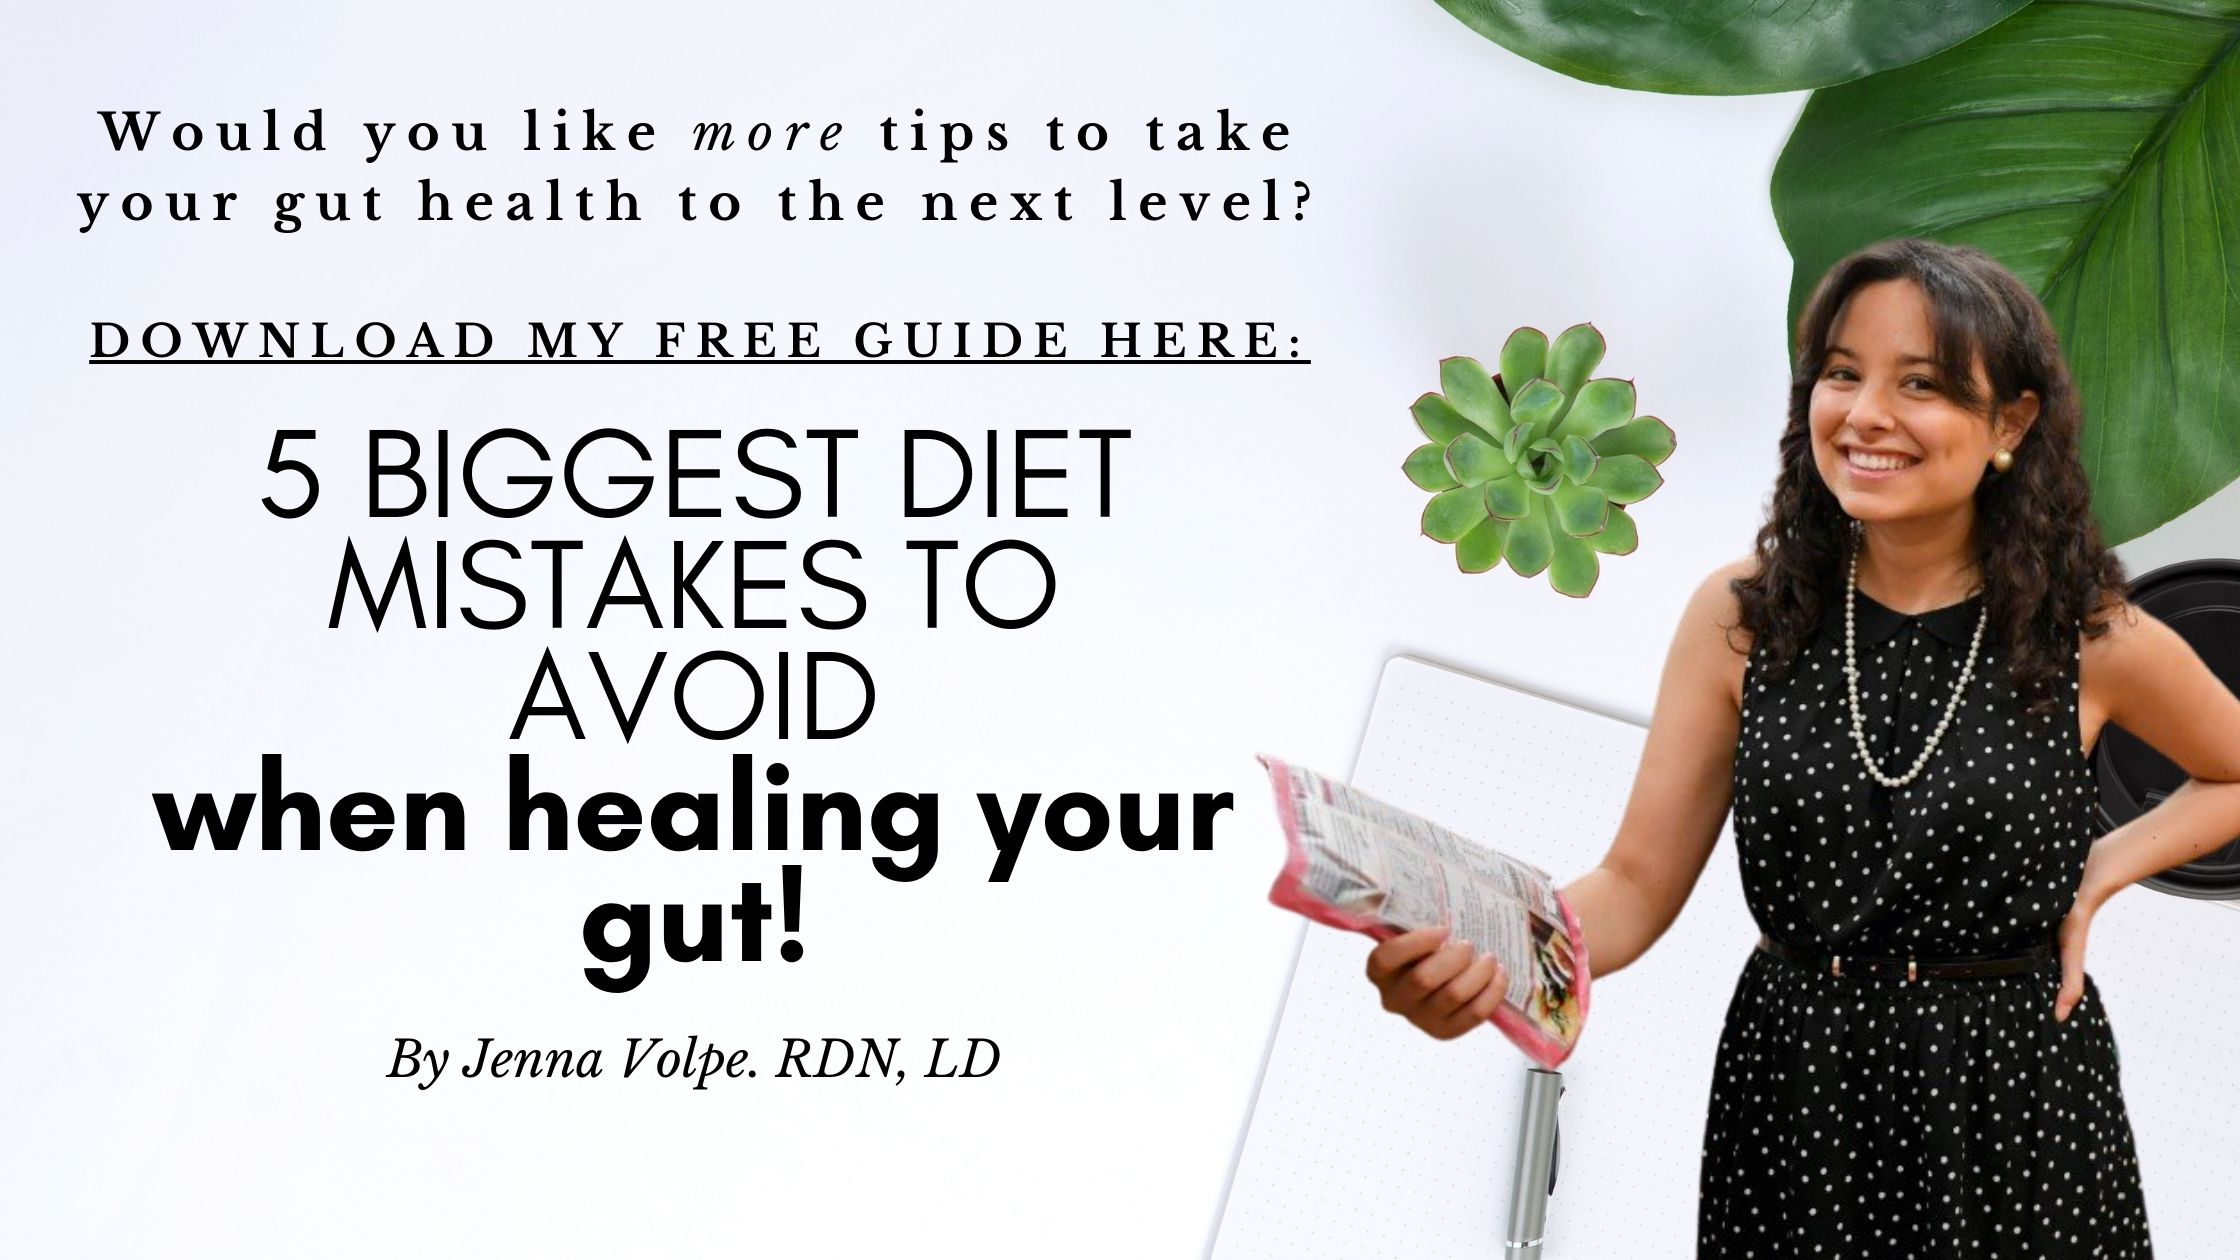 Link to free download - 5 diet tips to avoid for digestive health - Jenna Volpe holistic dietitian